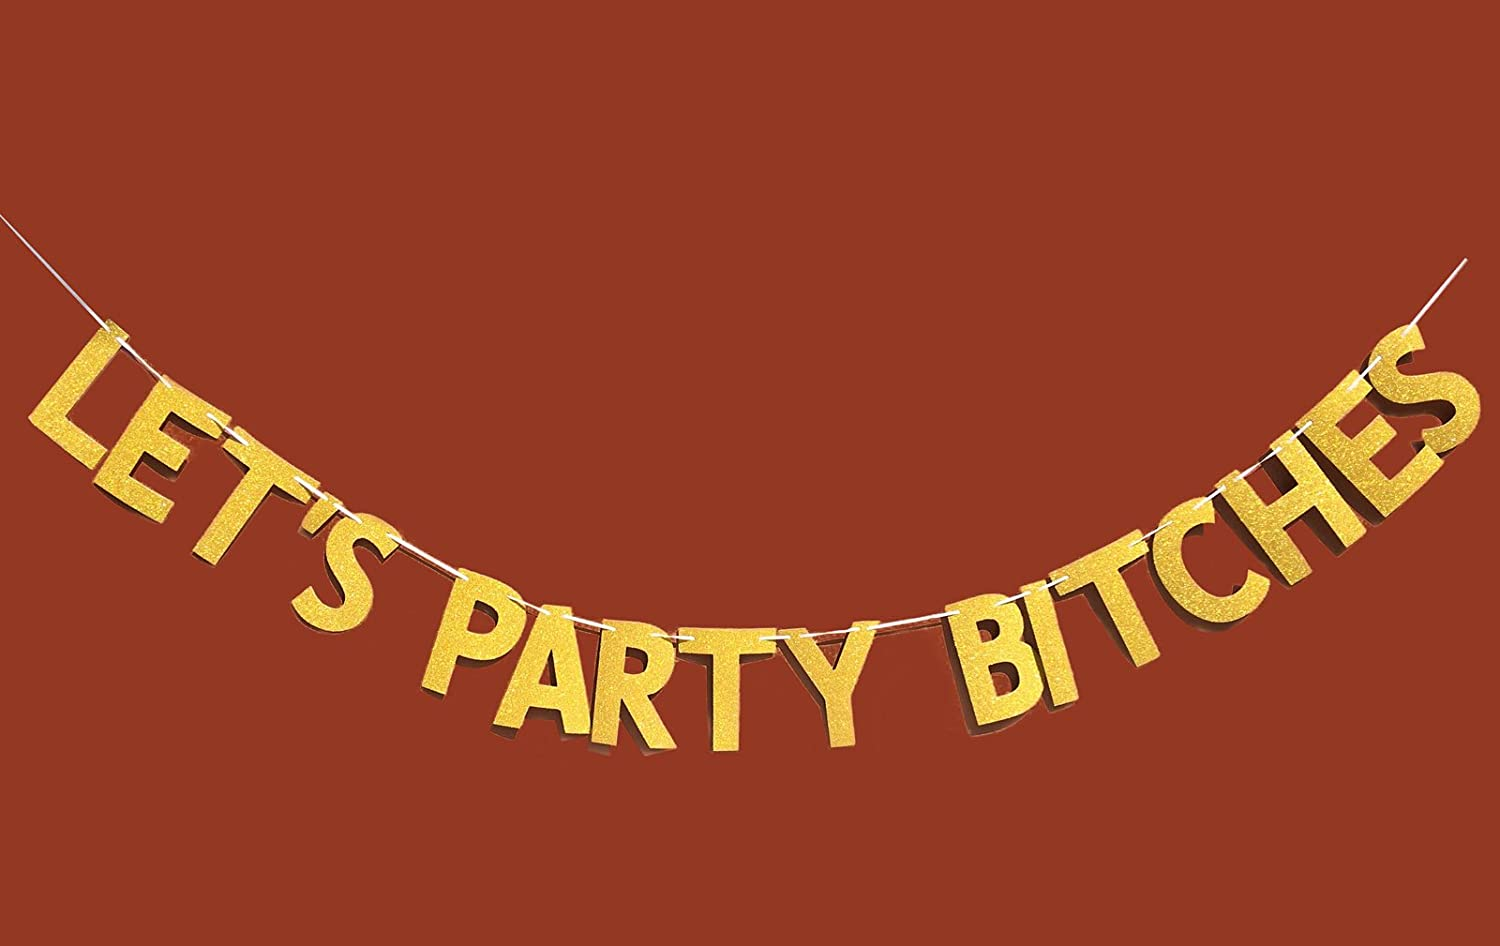 FECEDY Glitter Let's Party Bitches Gold Banner for Bachelorette Party Decoration